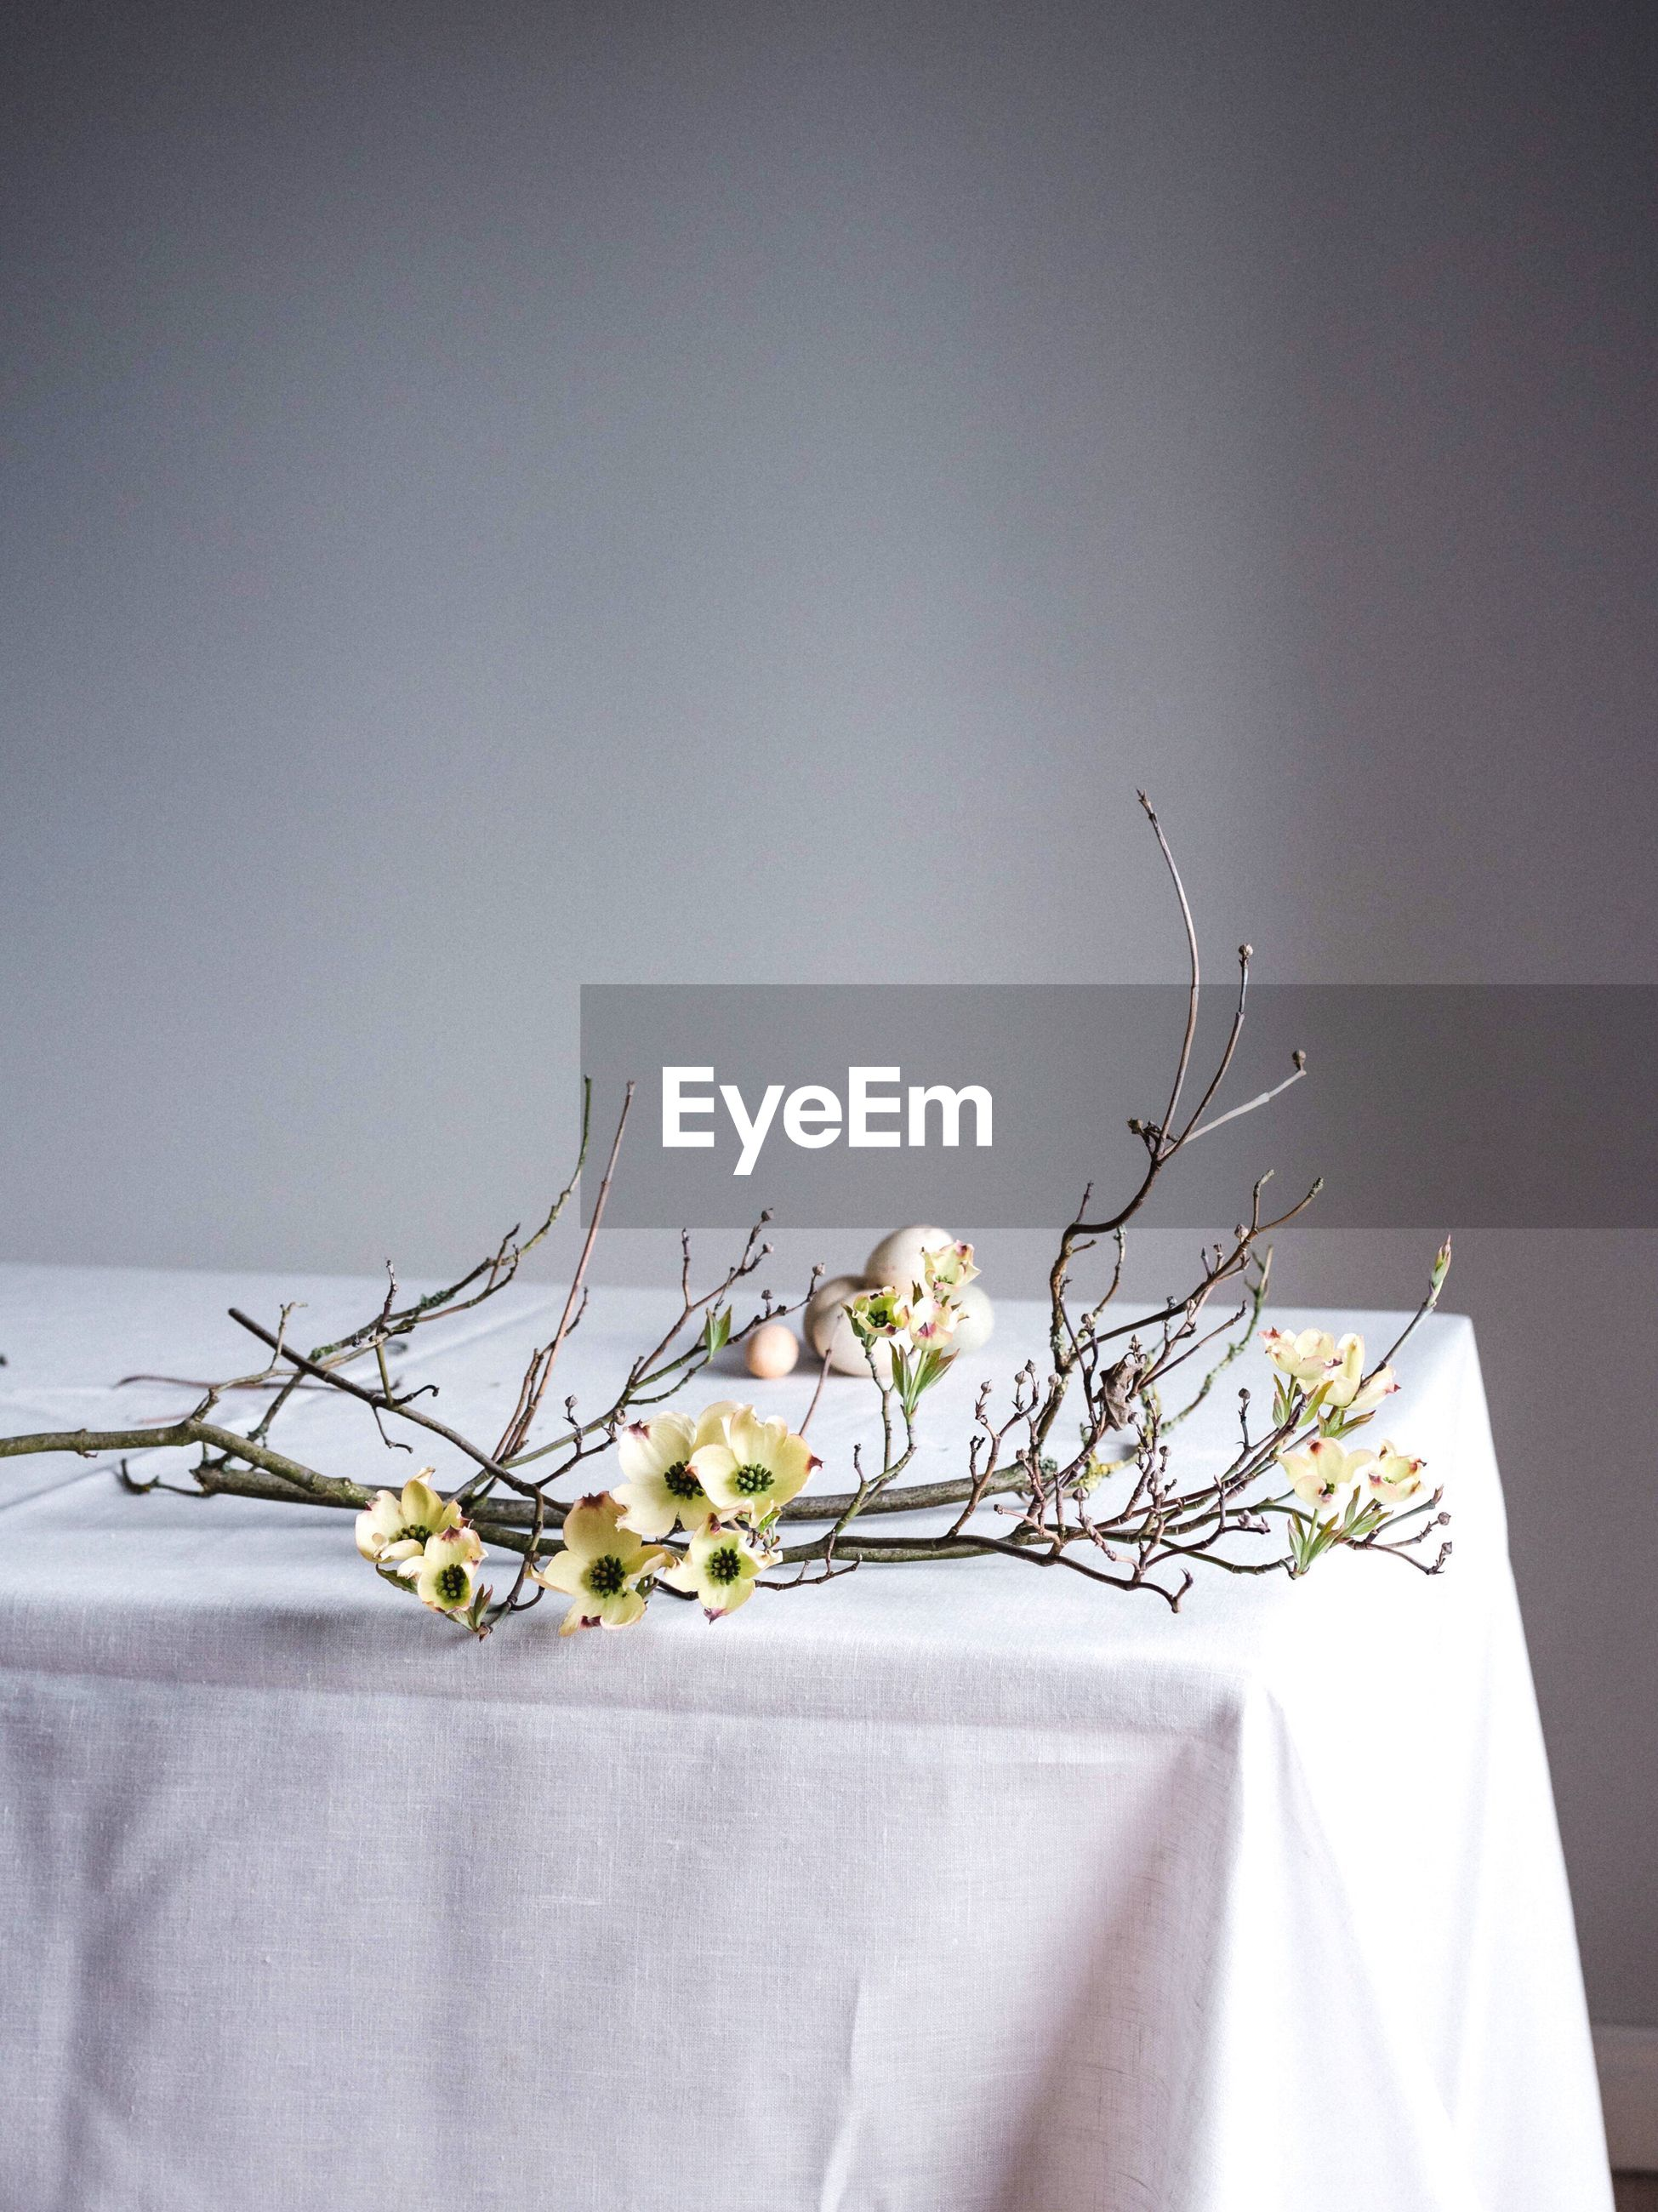 Close-up of white flowers on table against wall